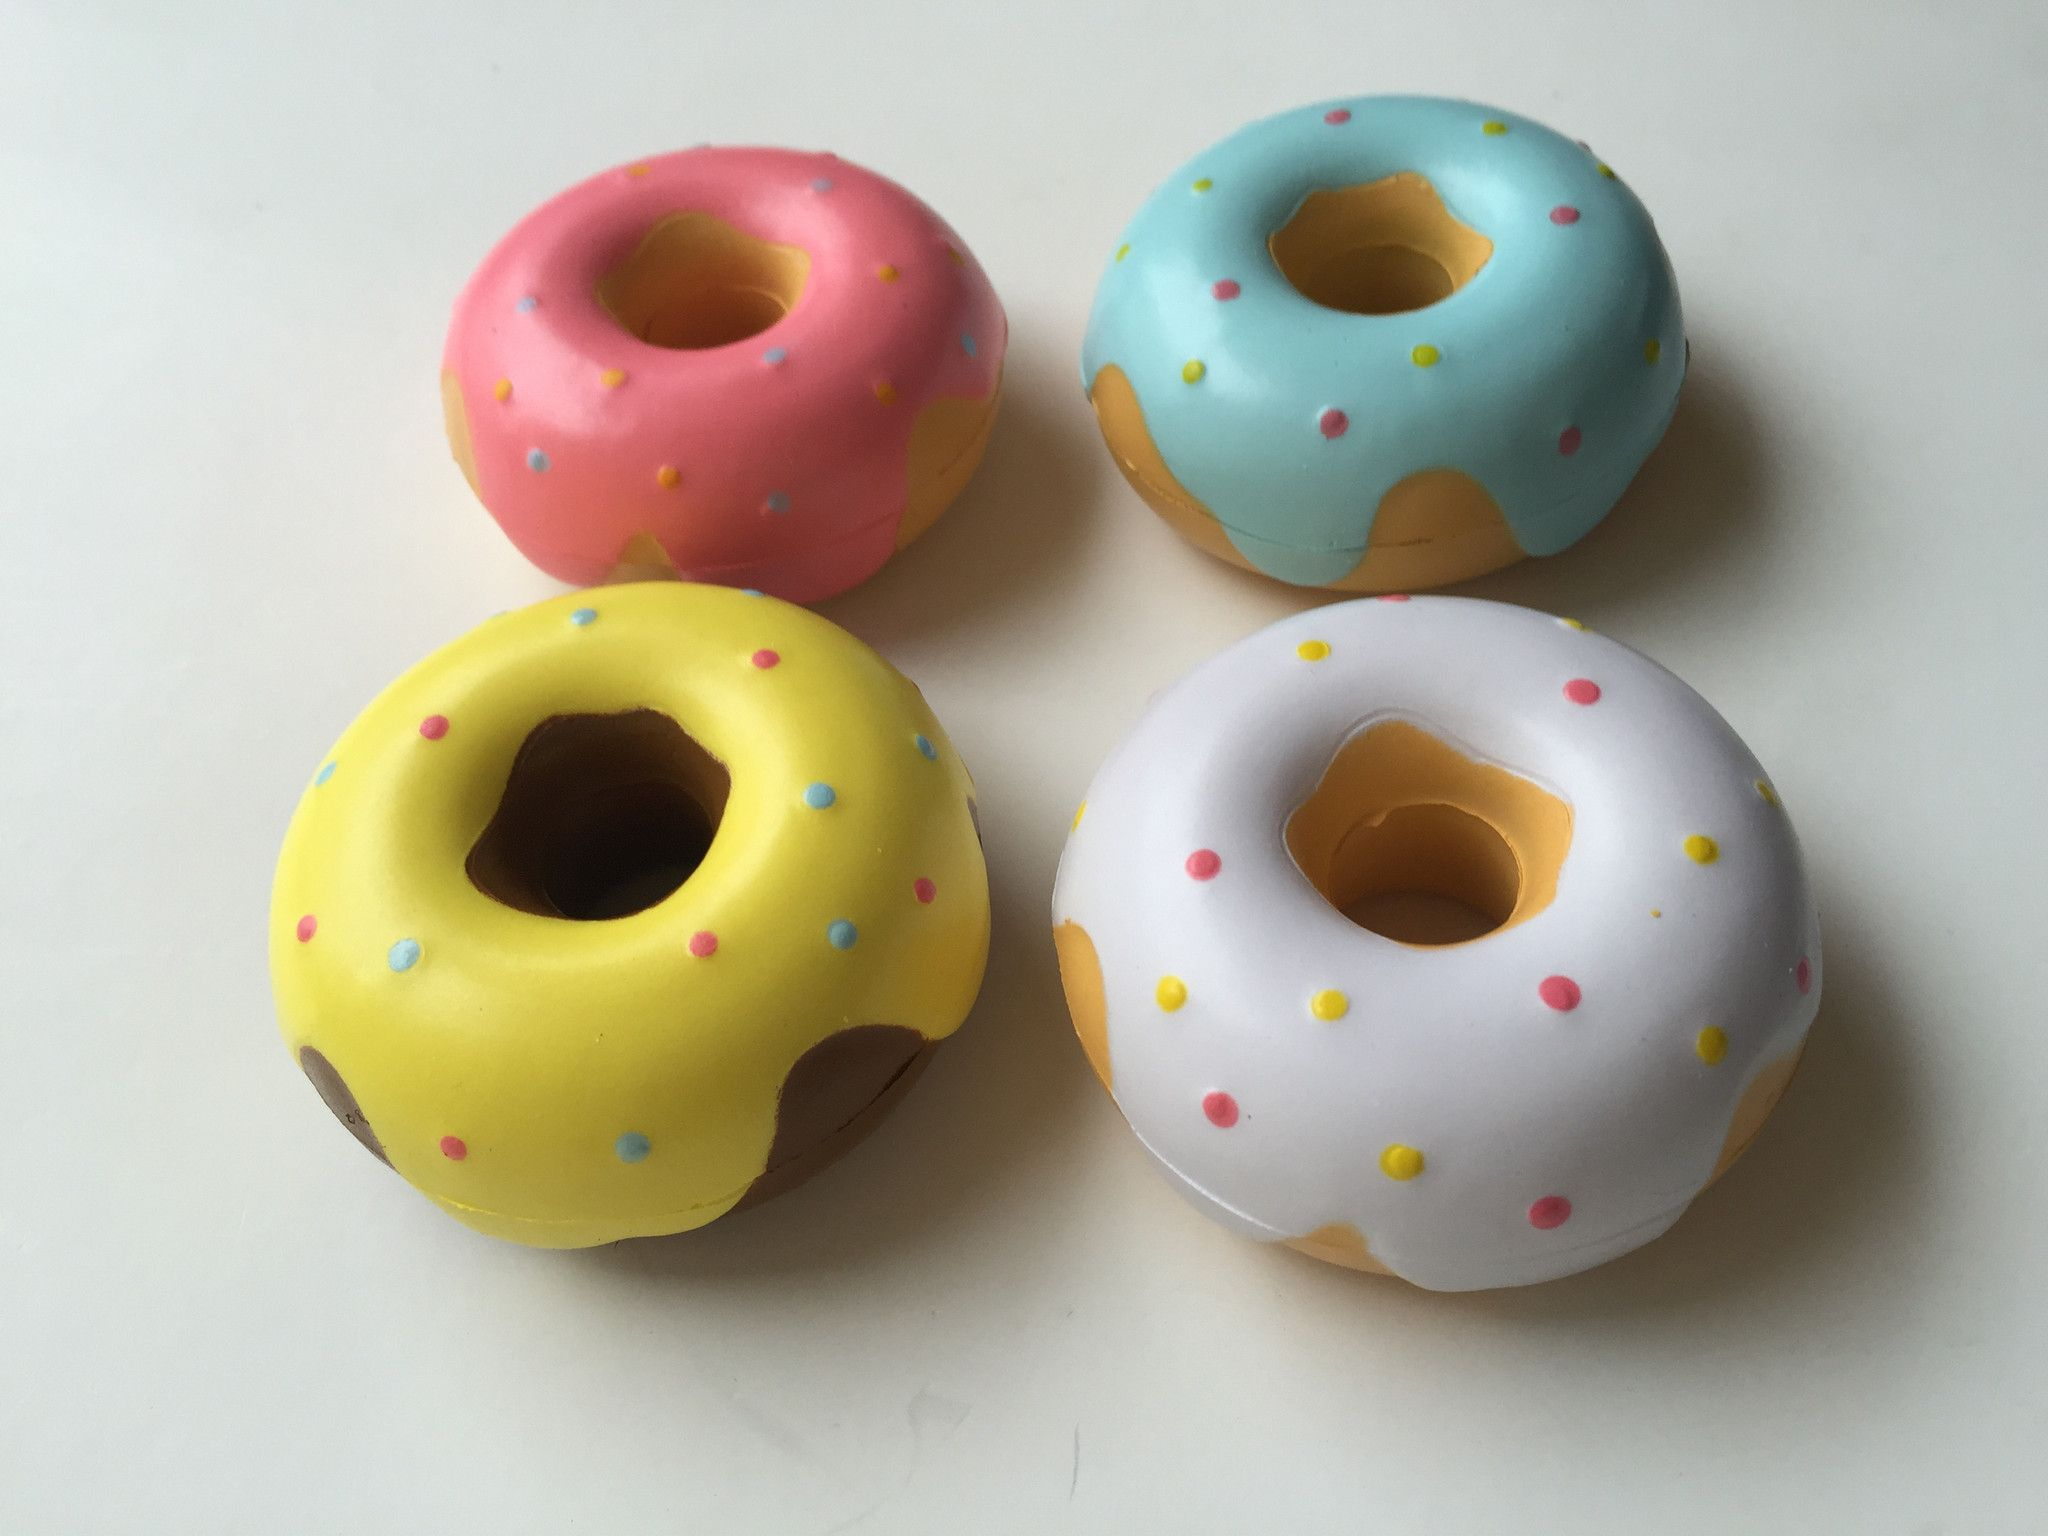 Fun Diy Projects For Bedrooms Ibloom Donut Squishies Charms Lol Projects To Try